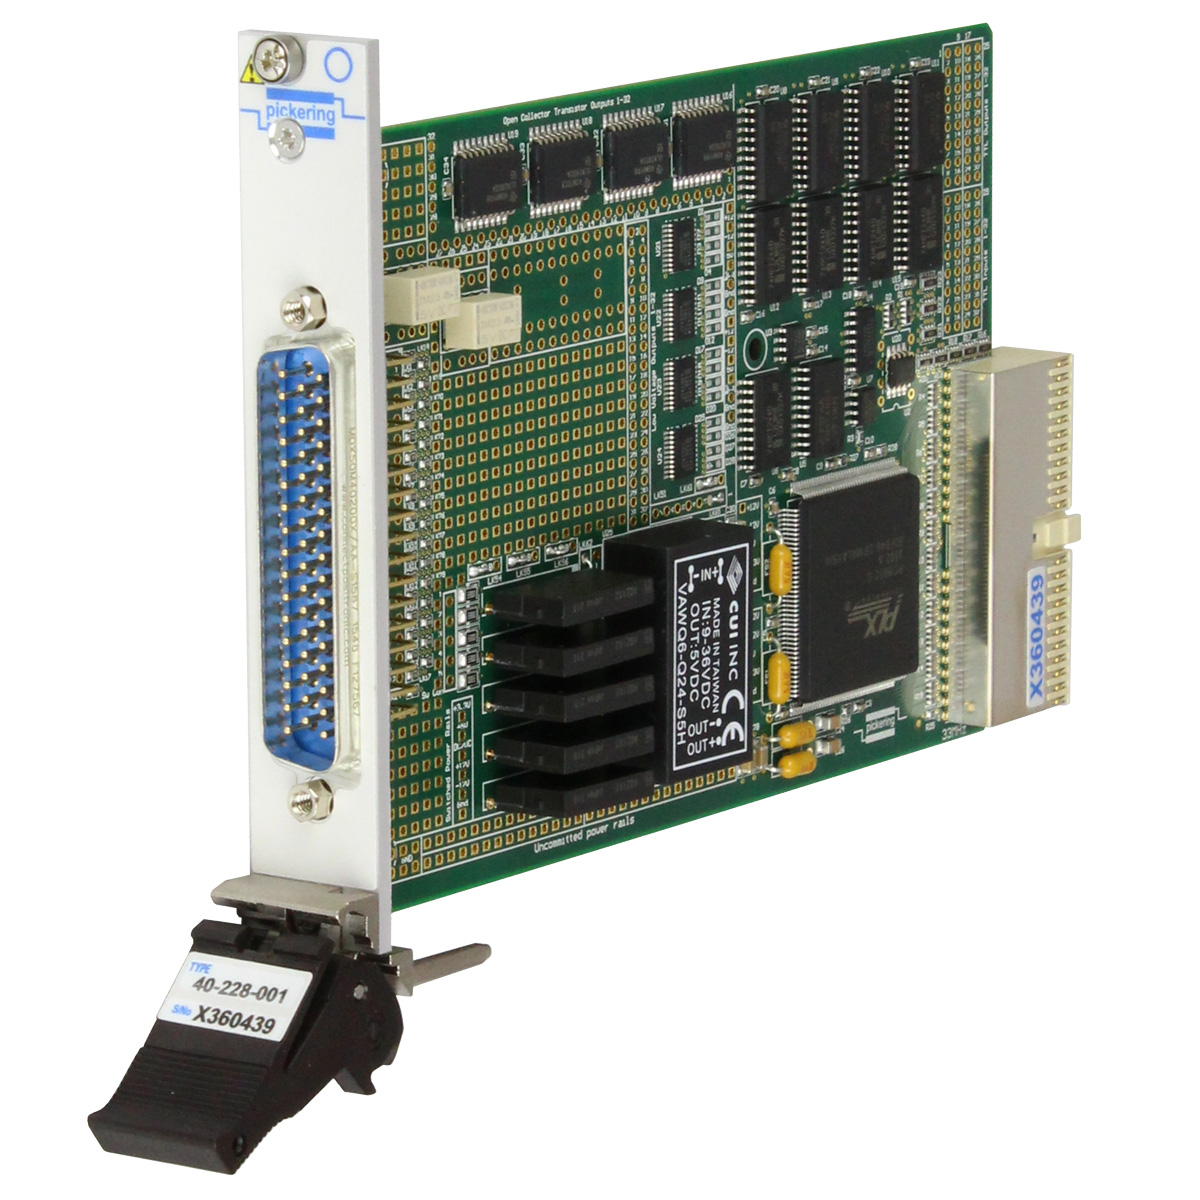 40-228 PXI Digital I/O Module With Power Distribution